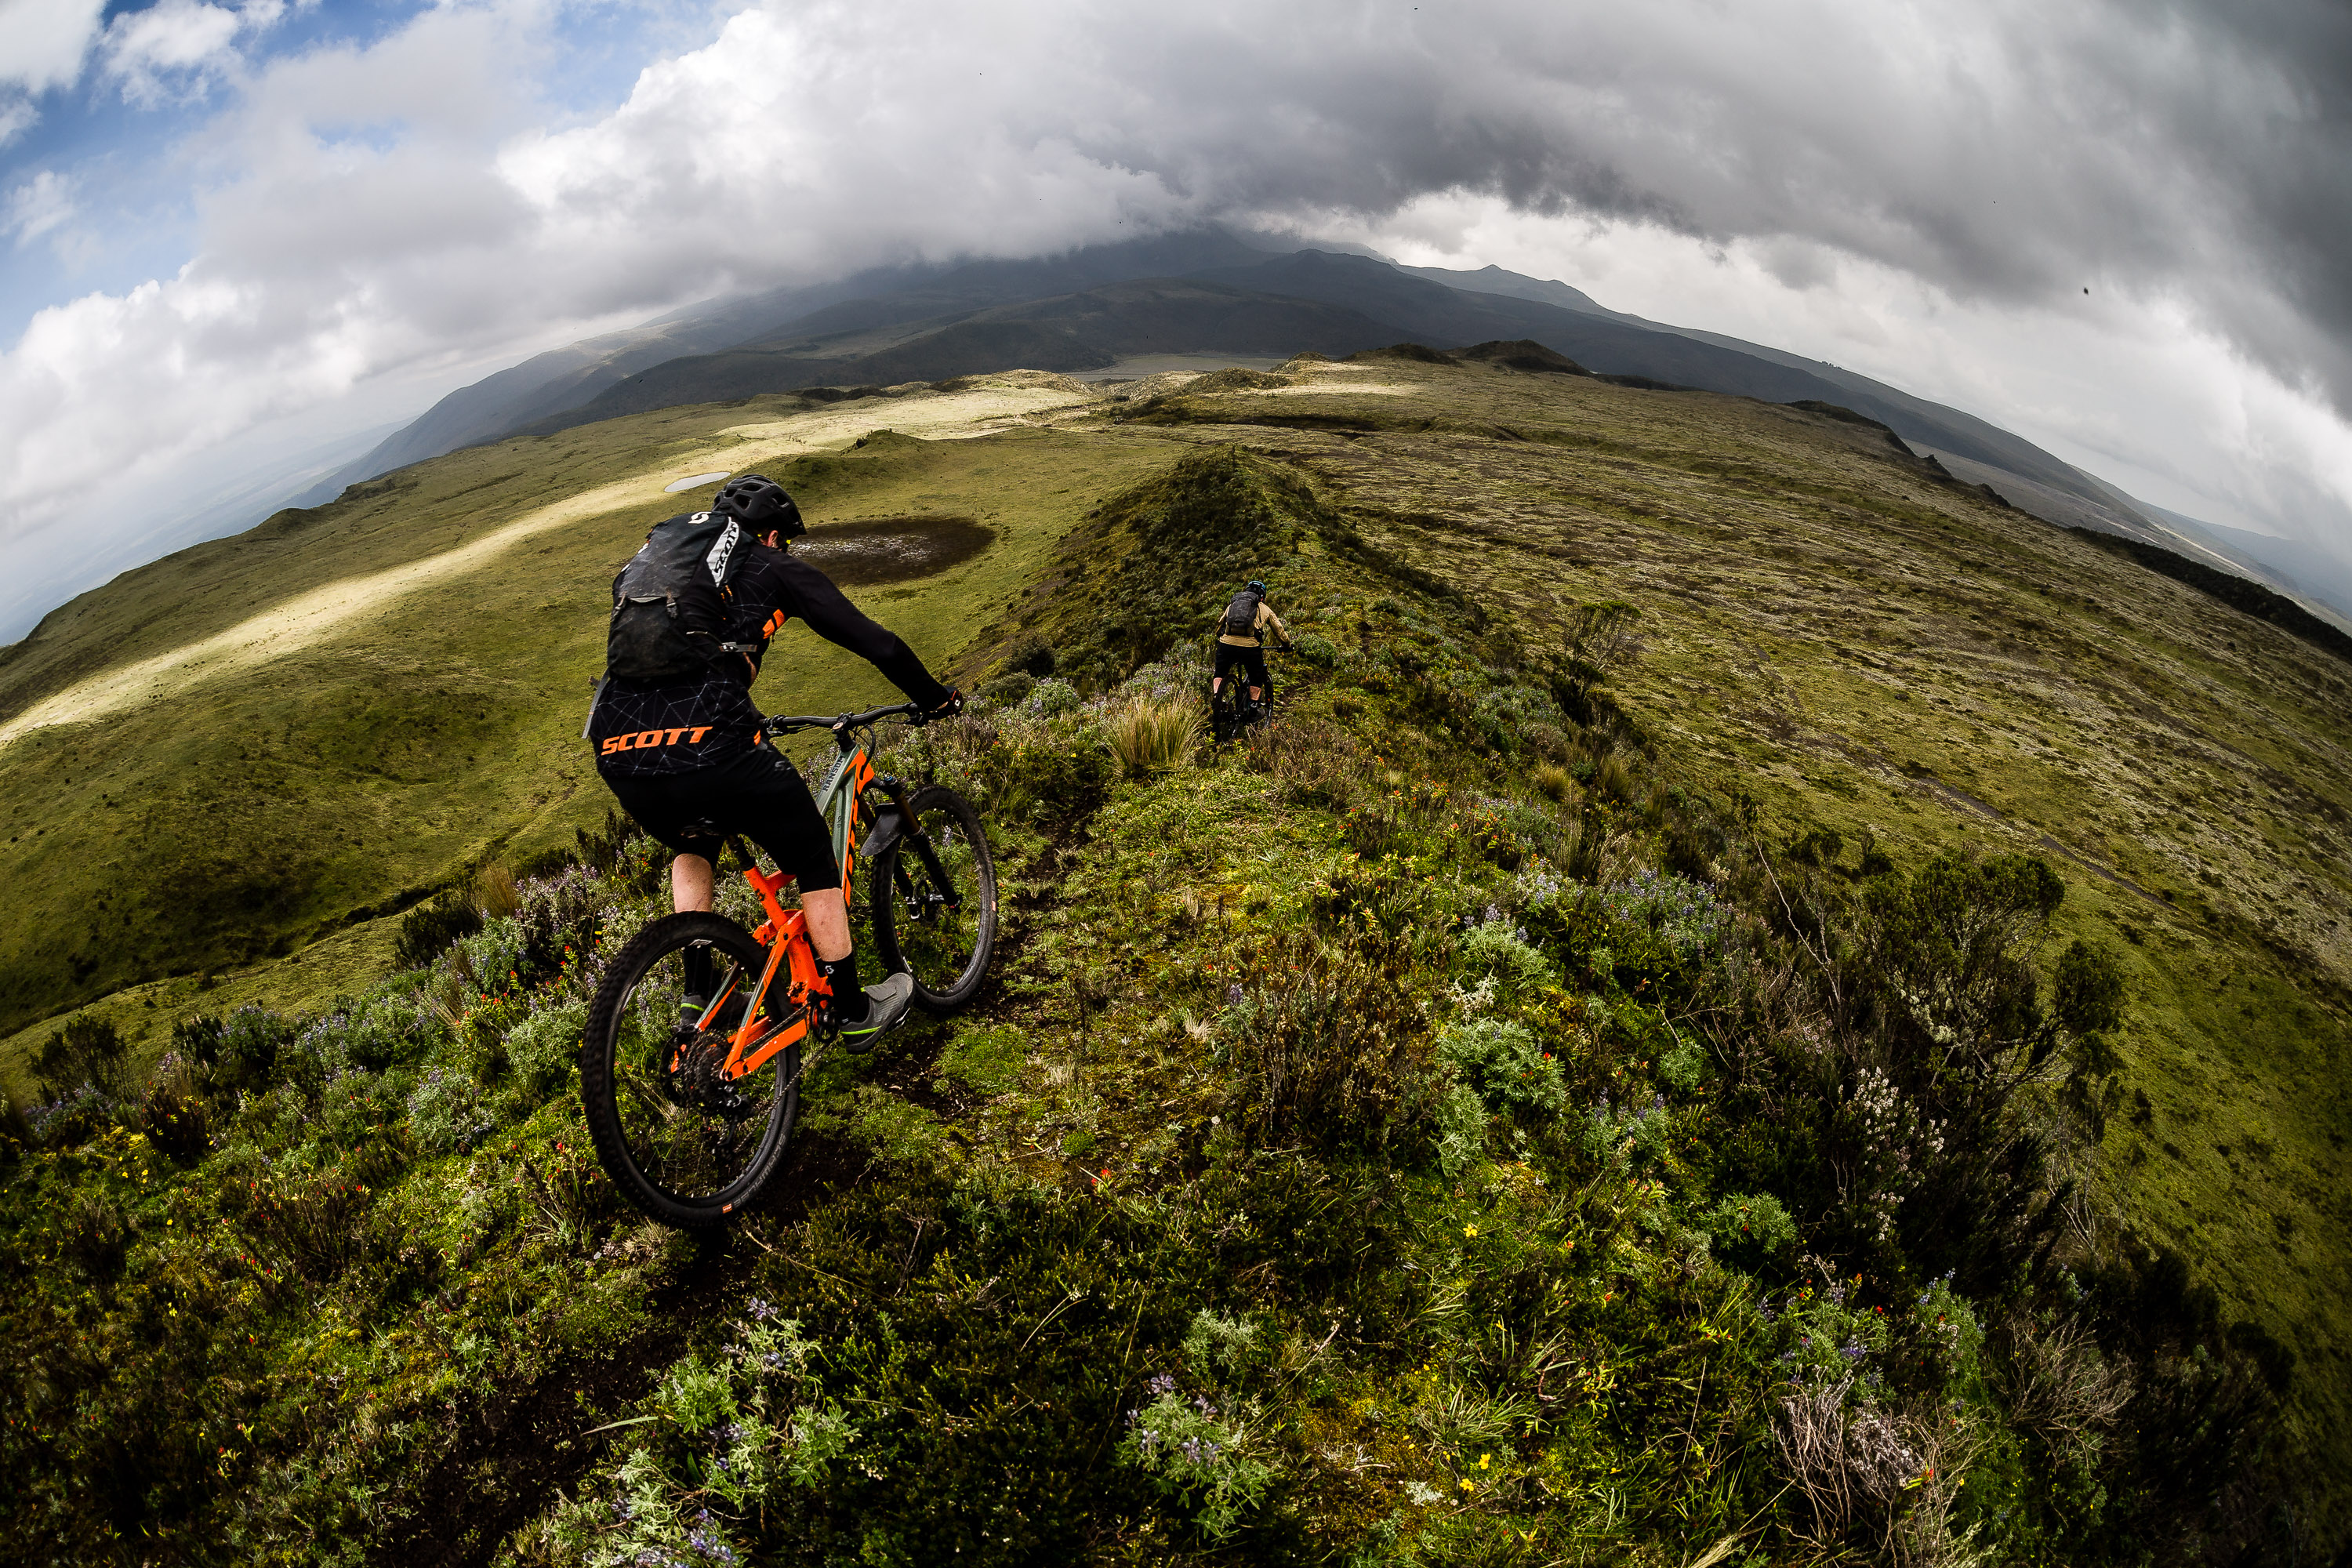 Heaven's ridge delivering the goods on our Ecuador MTB Film